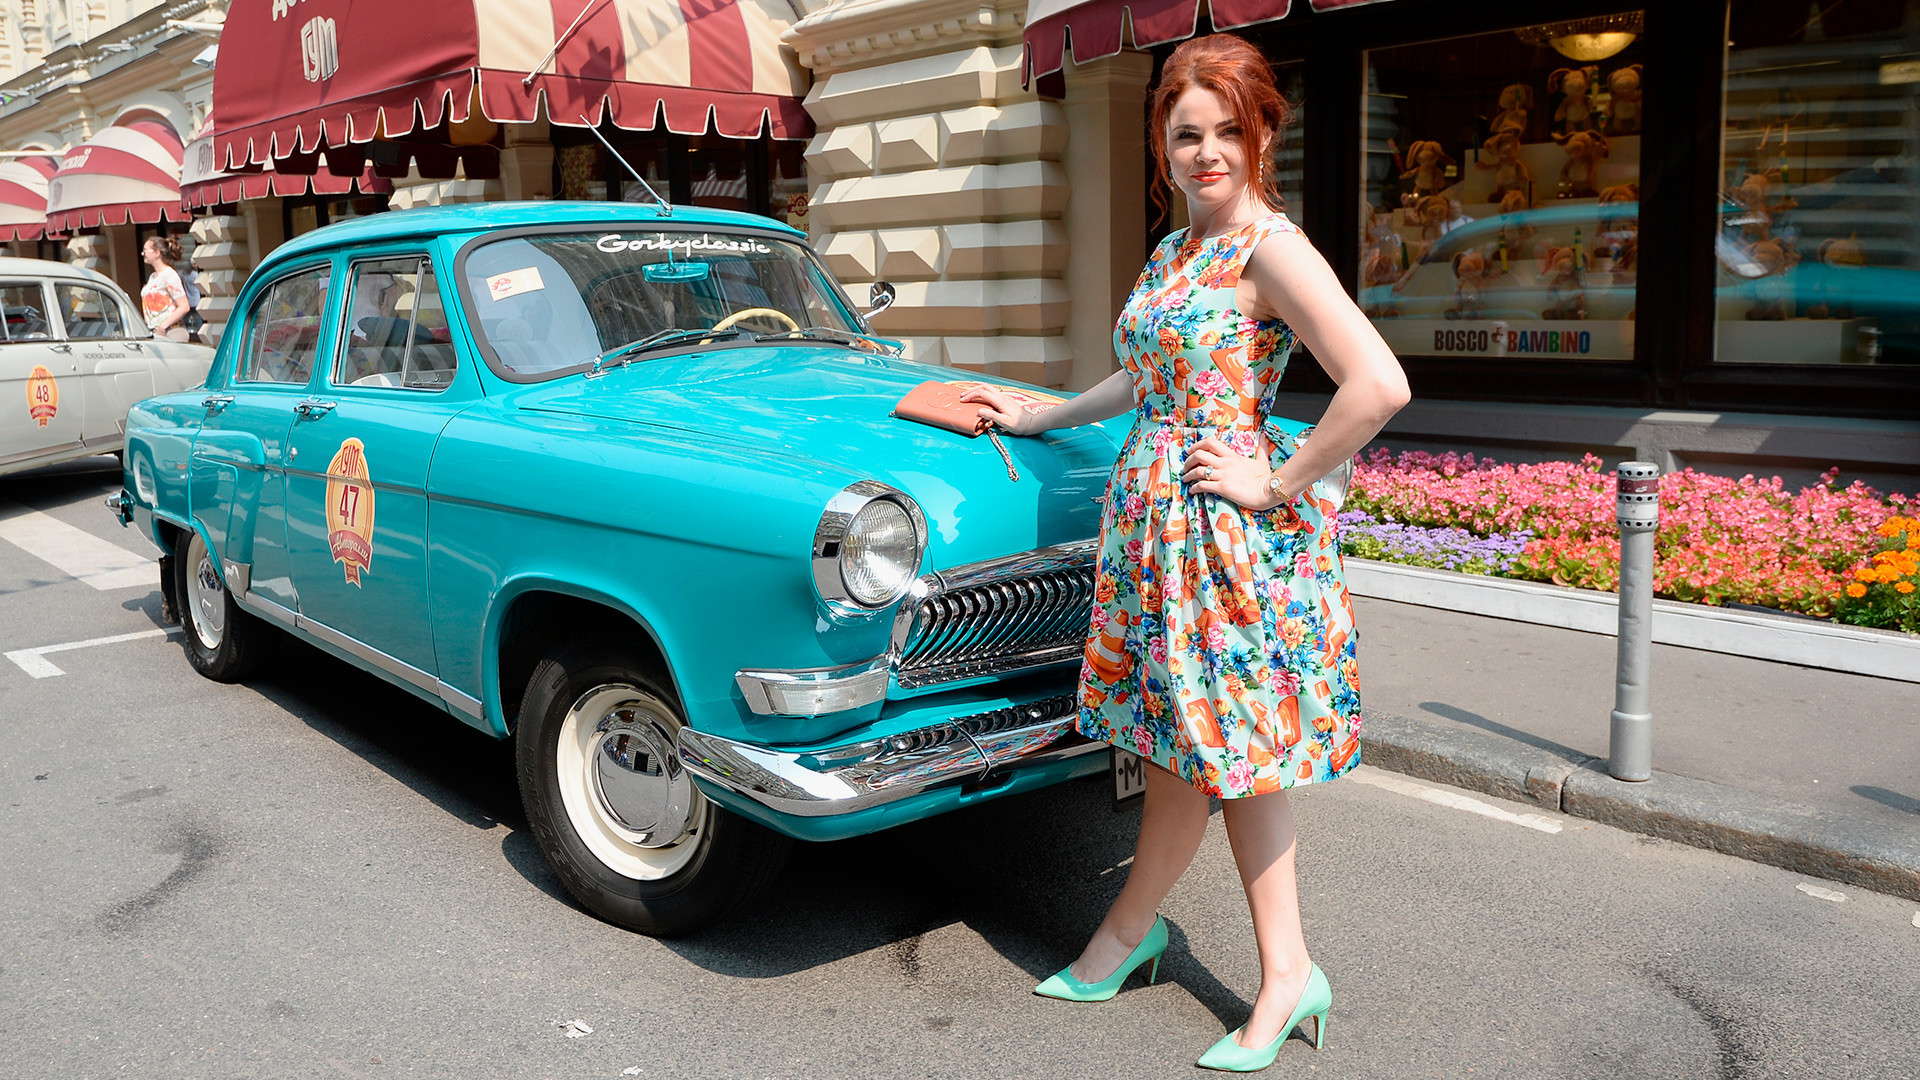 Gaz 21R Volga car before the 2016 Gorkyclassic GUM vintage car rally in Moscow.